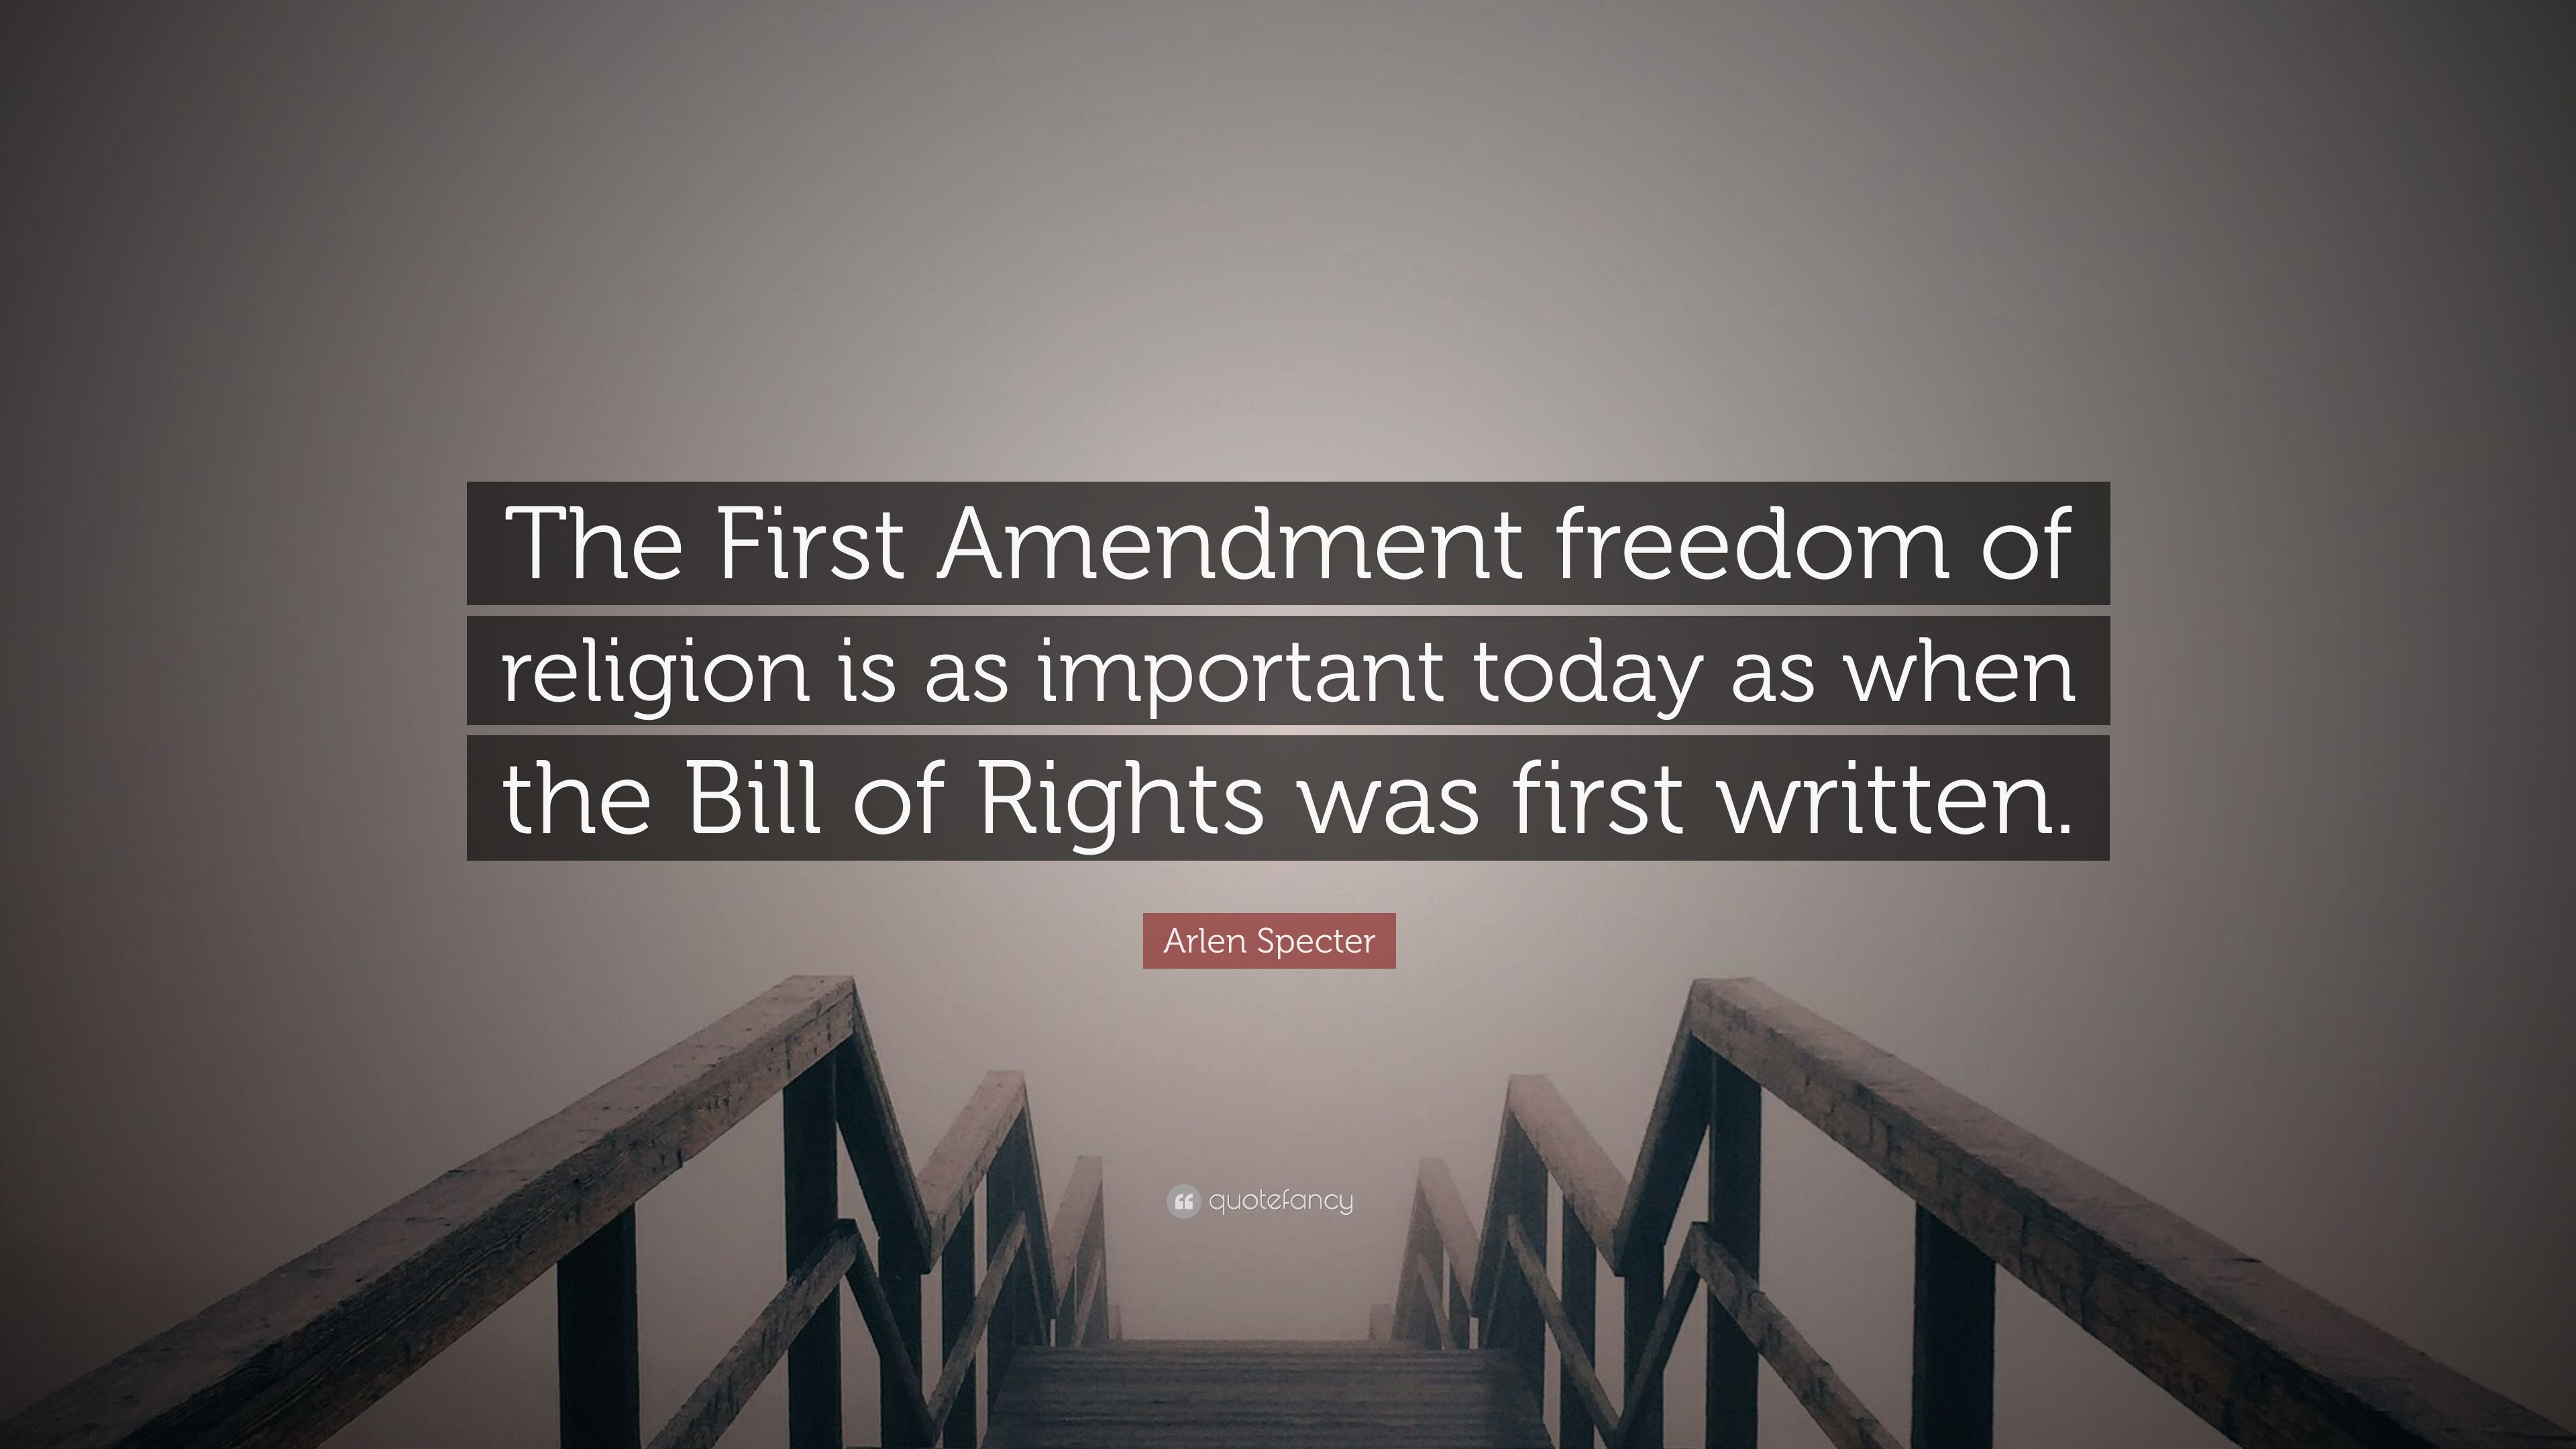 how is the bill of rights important today